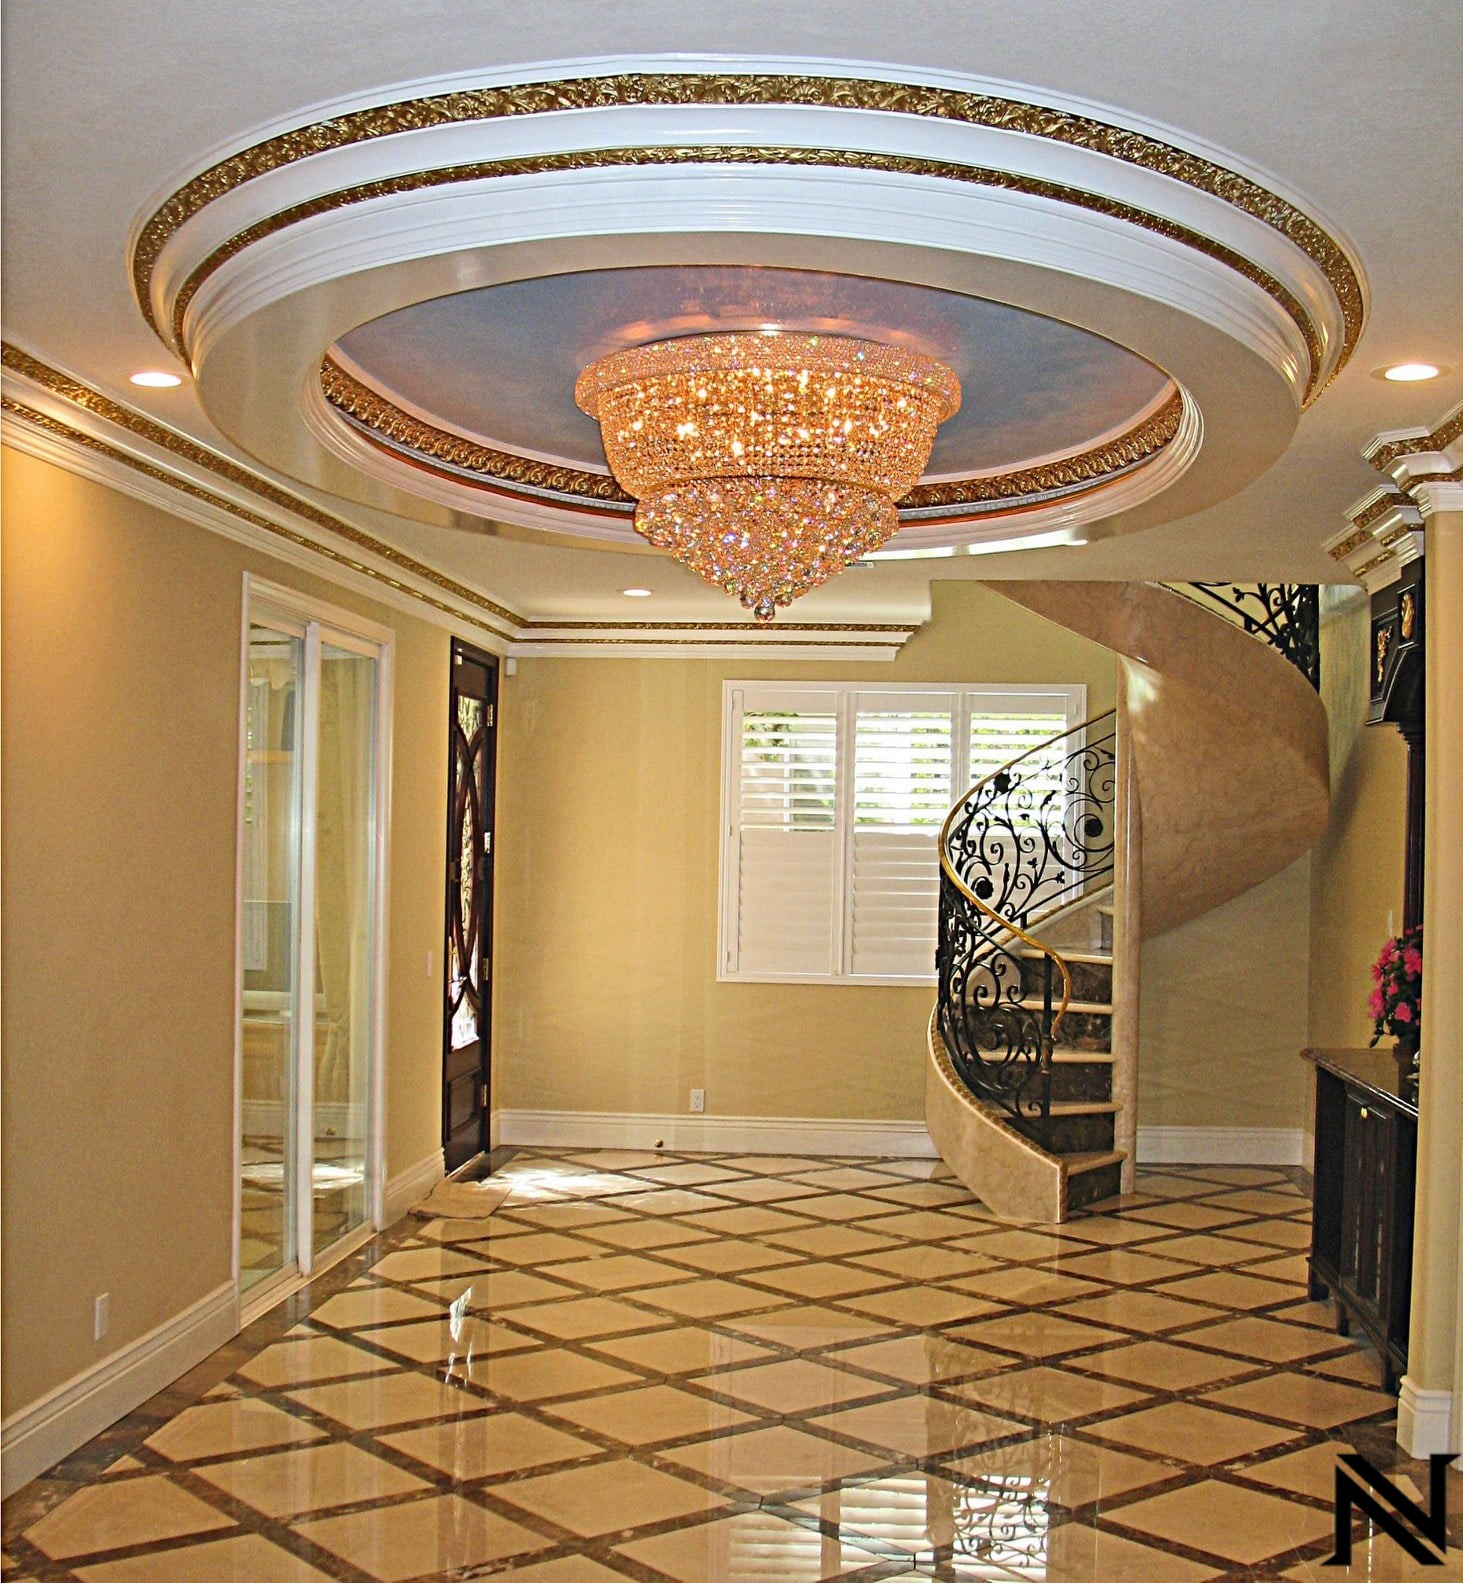 Spiral Staircase with Metalwork RailingsStaircase Railings Design Ideas Naddour's Custom Metalworks